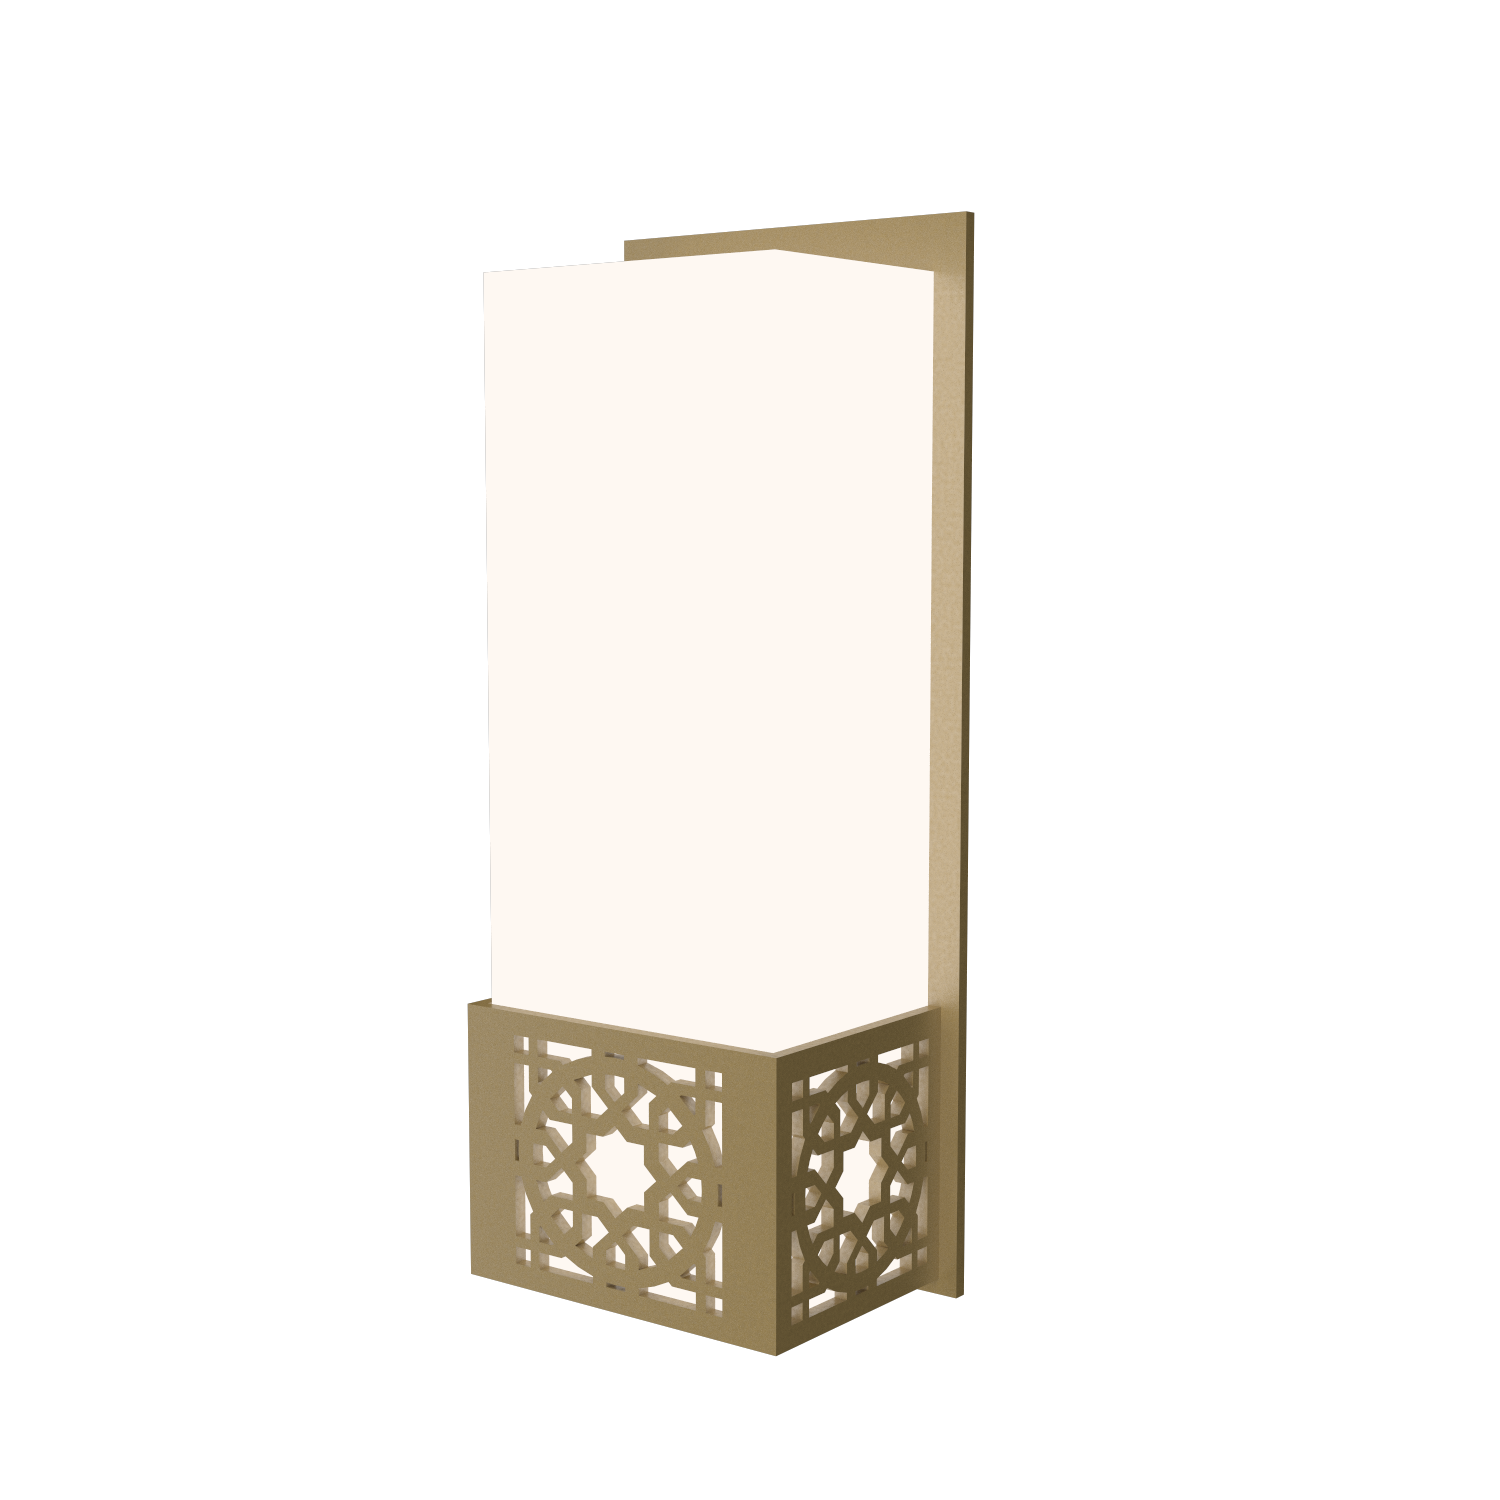 Wall Lamp Accord Patterns 4052 - Patterns Line Accord Lighting | Pale Gold